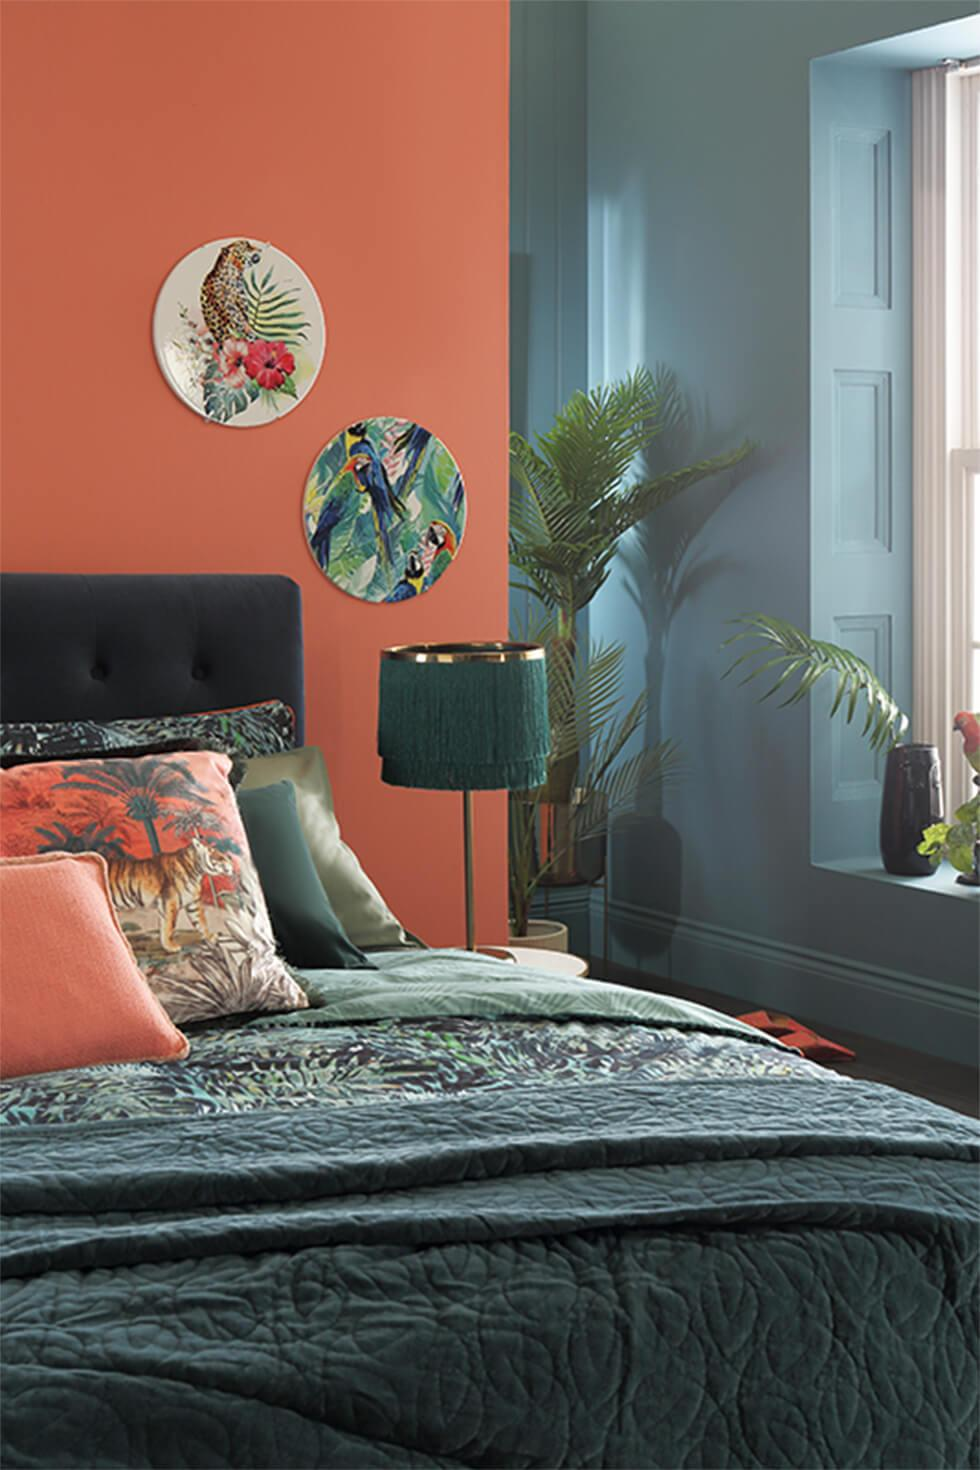 Tropical teal bedroom with contrasting orange and teal walls, and a dark velvet bed.